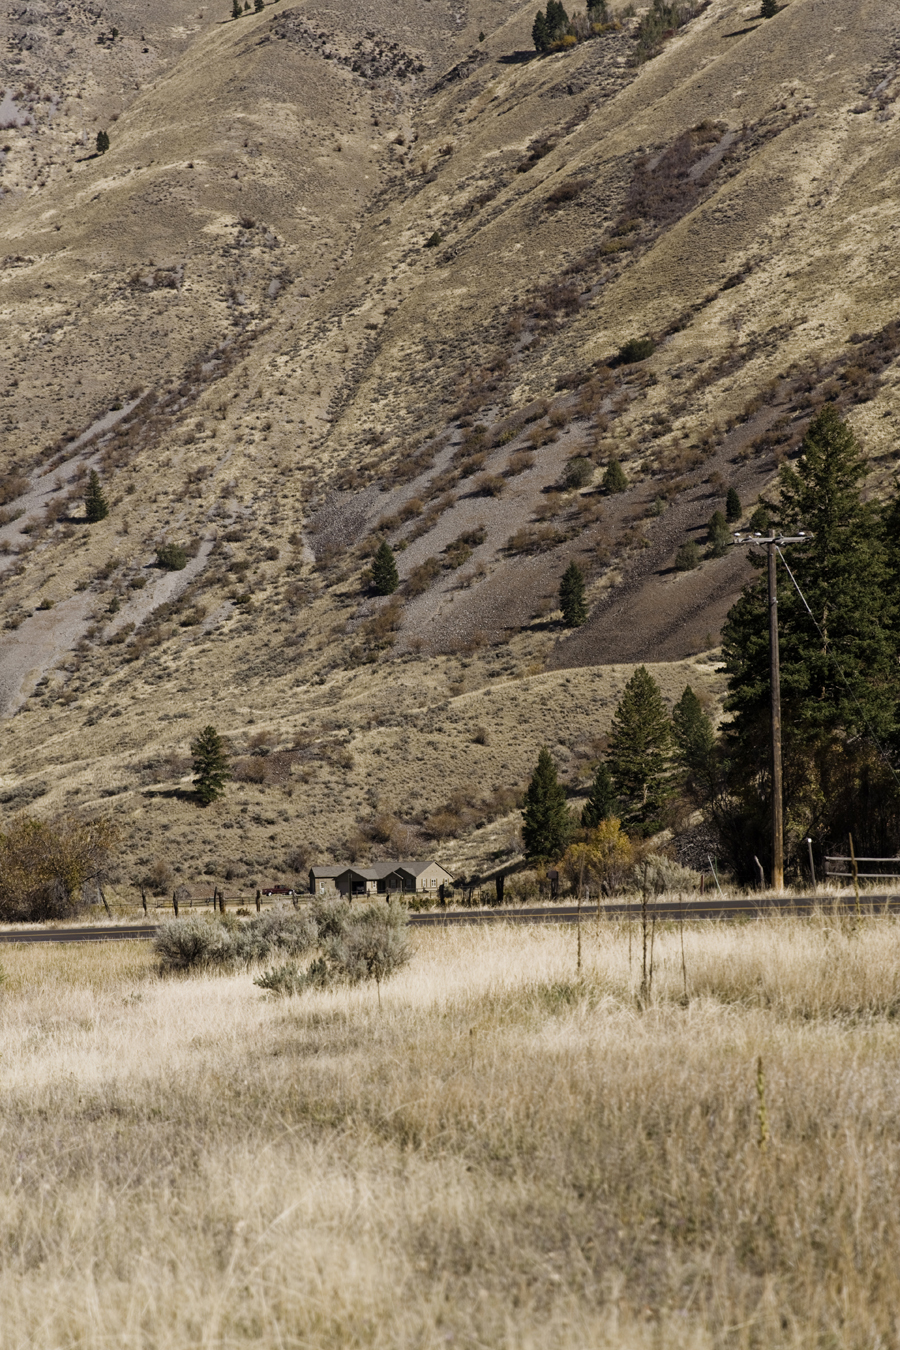 roadtrip_celinemarks_ny_montana2015_079